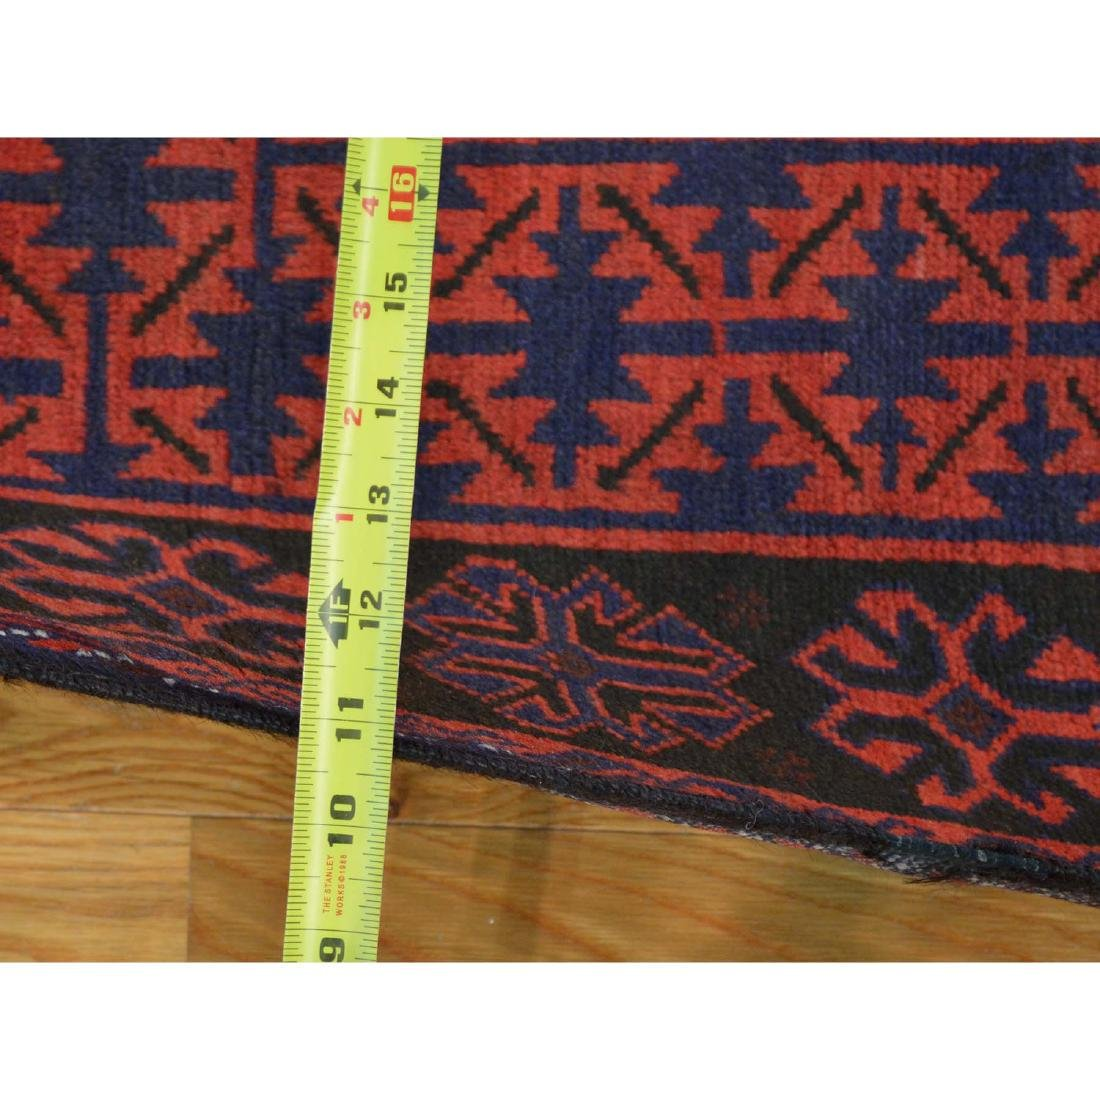 Tribal Design Persian Baluch Hand Made Rug 6.7x10.8 - 3